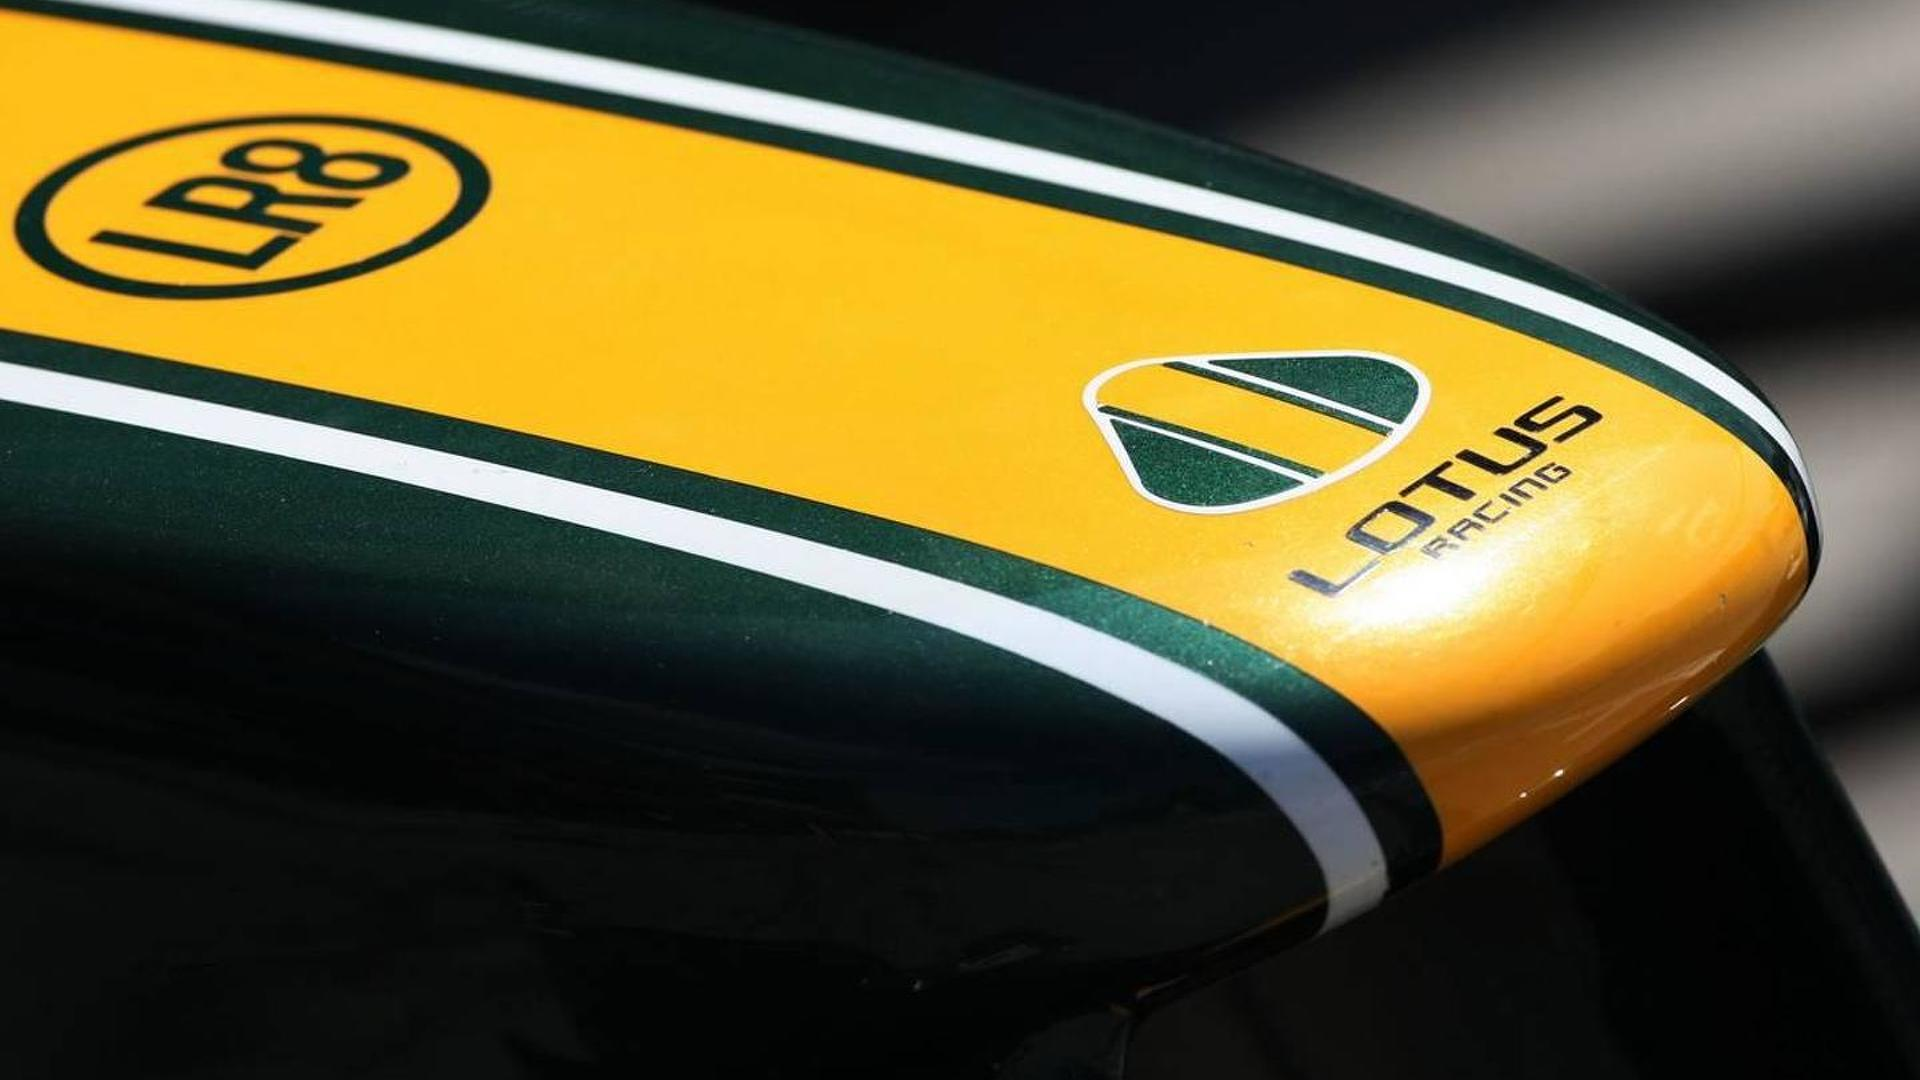 Lotus to announce 2011 lineup in Singapore - report